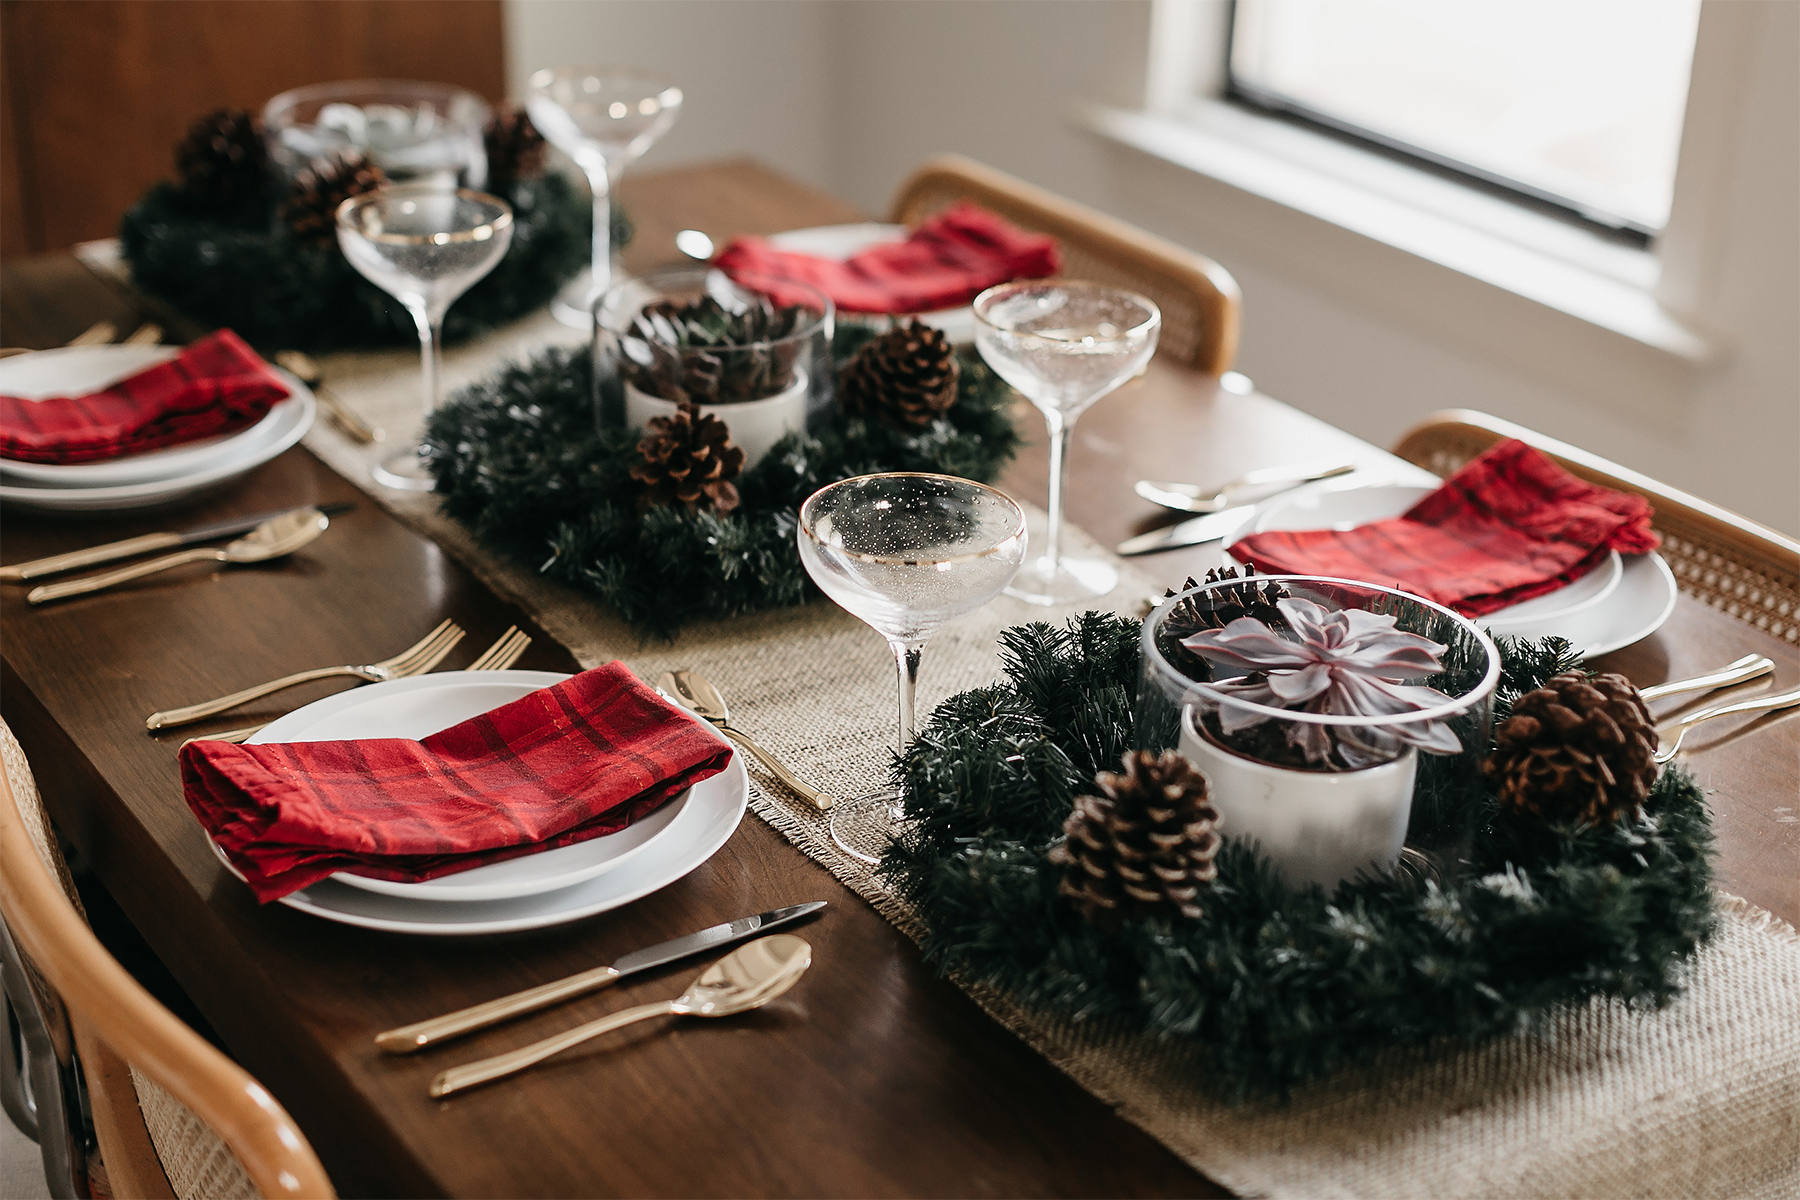 Fashion Jackson Christmas Tablescape Red Plaid Napkins White Dinnerware Gold Flatware Gold Champagne Flutes Wreath Pine Cone Centerpiece 2